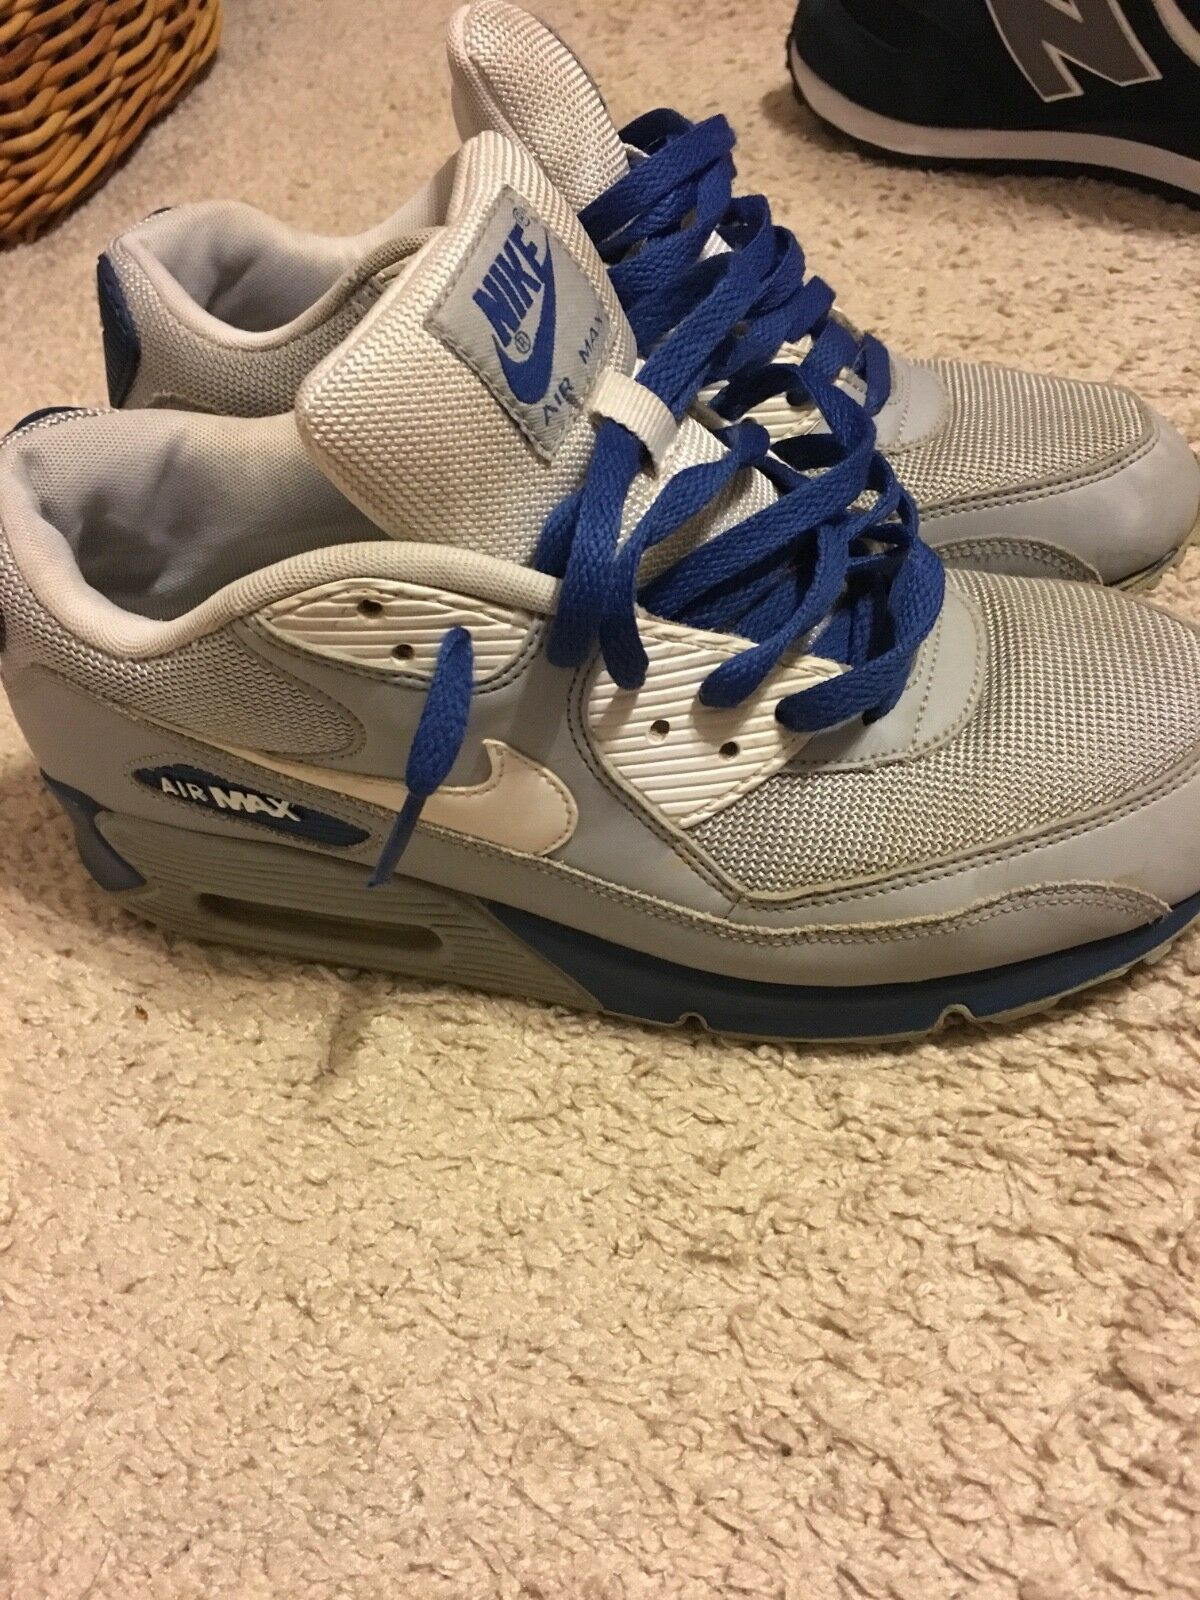 USED mens airmax 90 size 10. NOT VERY dirty but not perfect. NO rips, no box Cheap and beautiful fashion